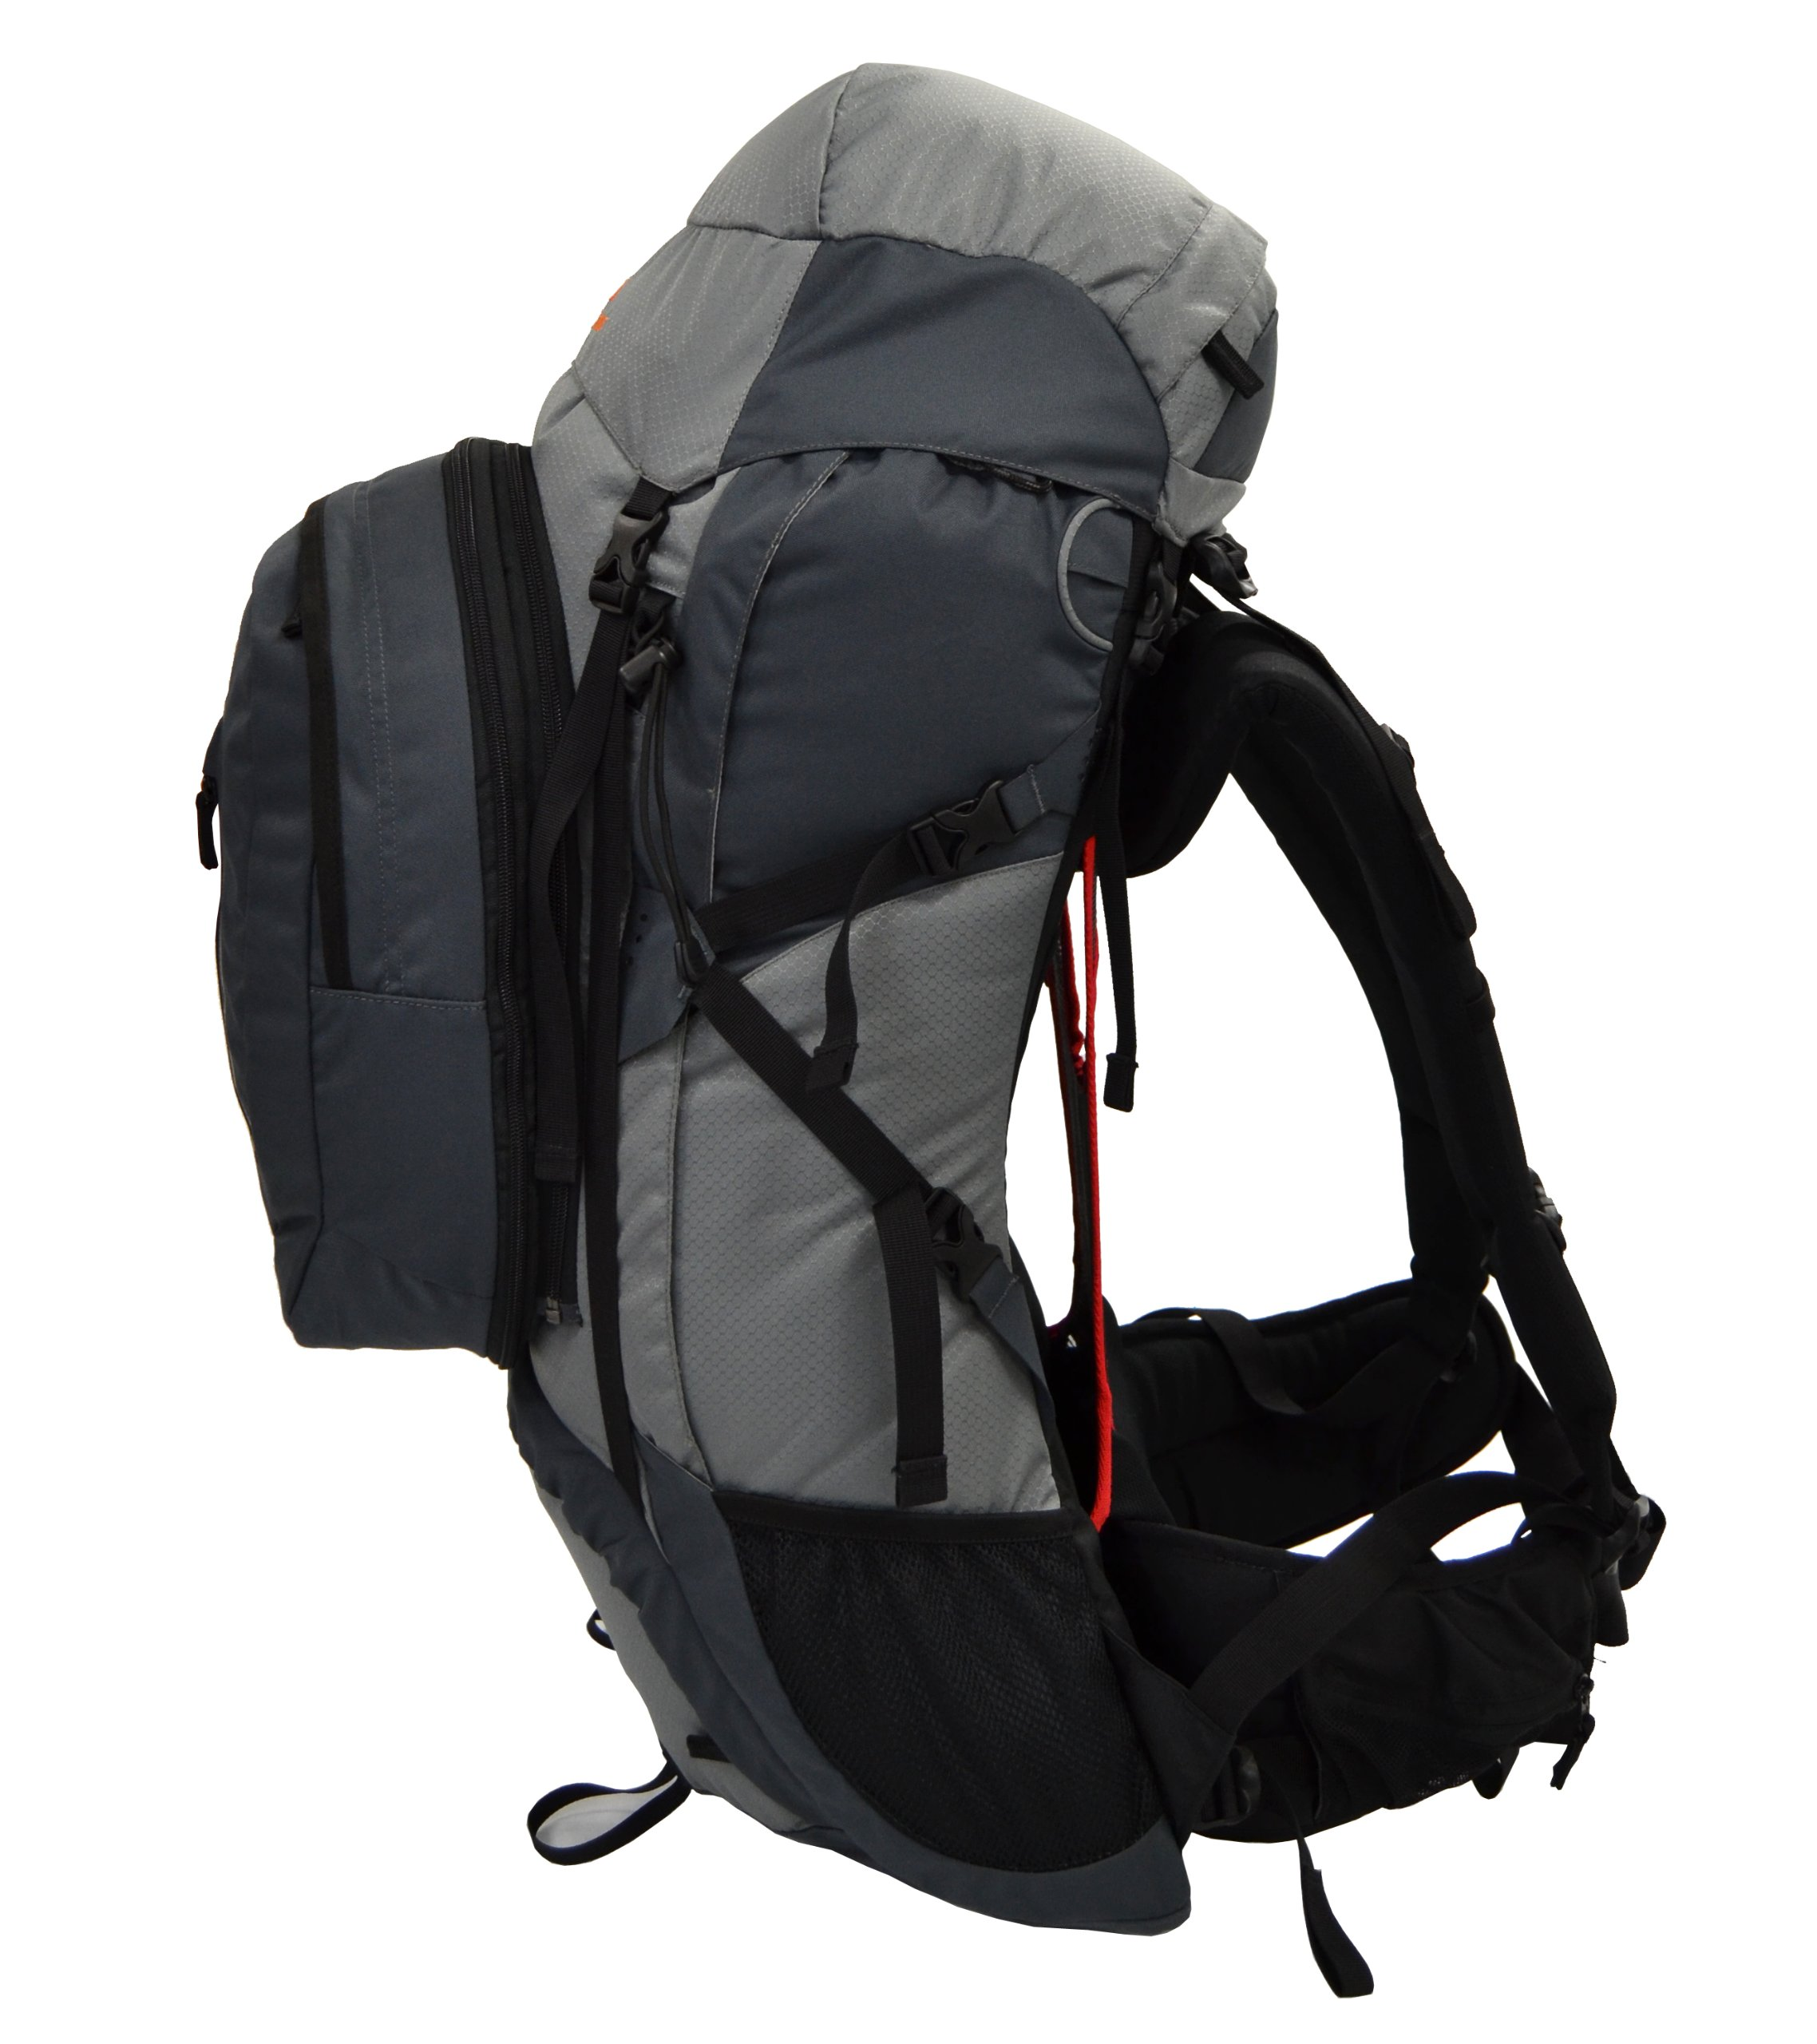 Guerrilla Packs Roundhouse Internal Frame Backpack, Middle Grey/Dark Grey by Guerrilla Packs (Image #2)